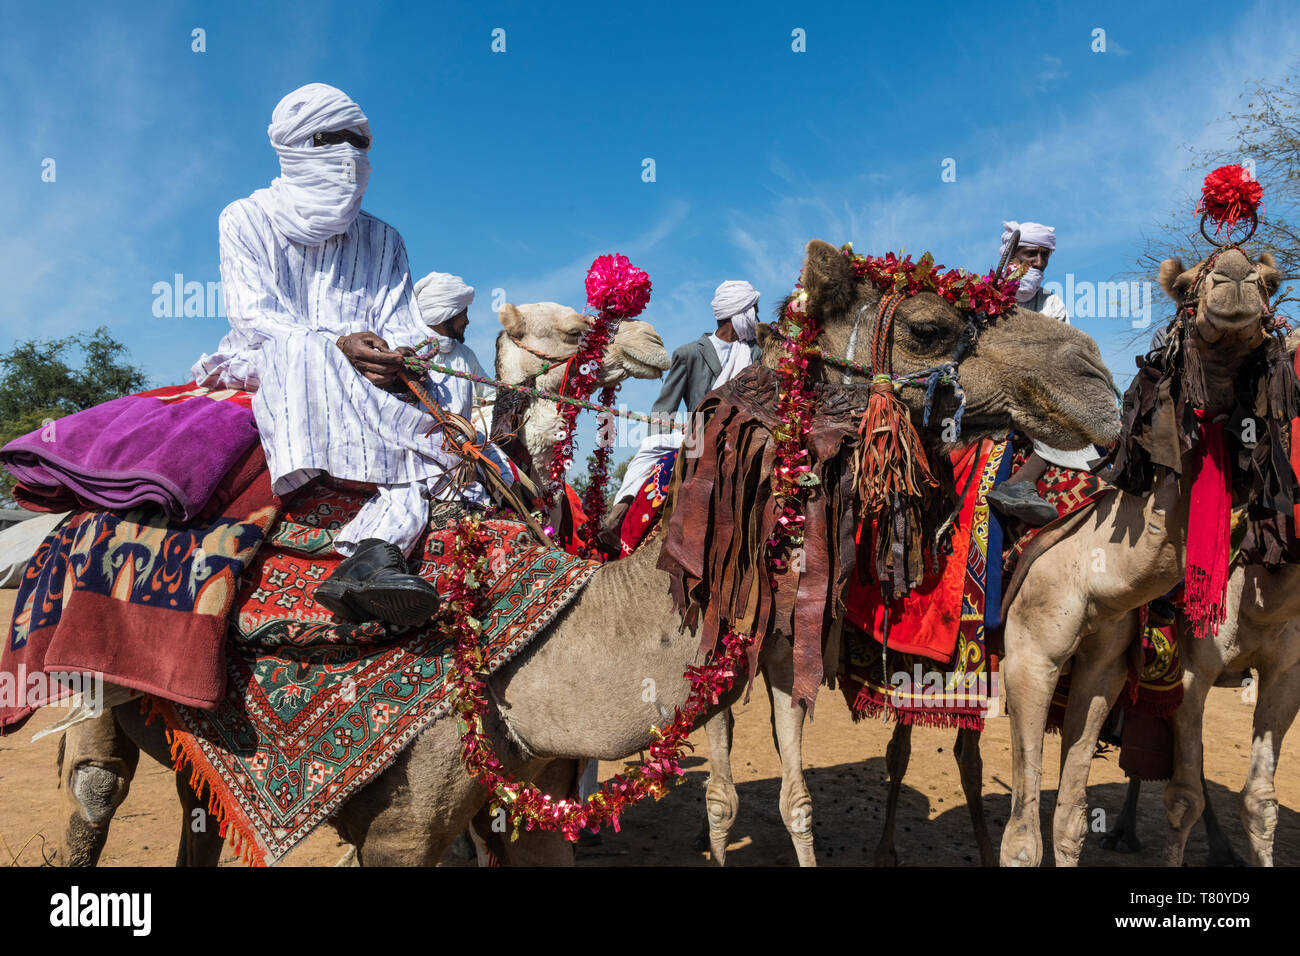 Colourful camel riders at a Tribal festival, Sahel, Chad, Africa - Stock Image